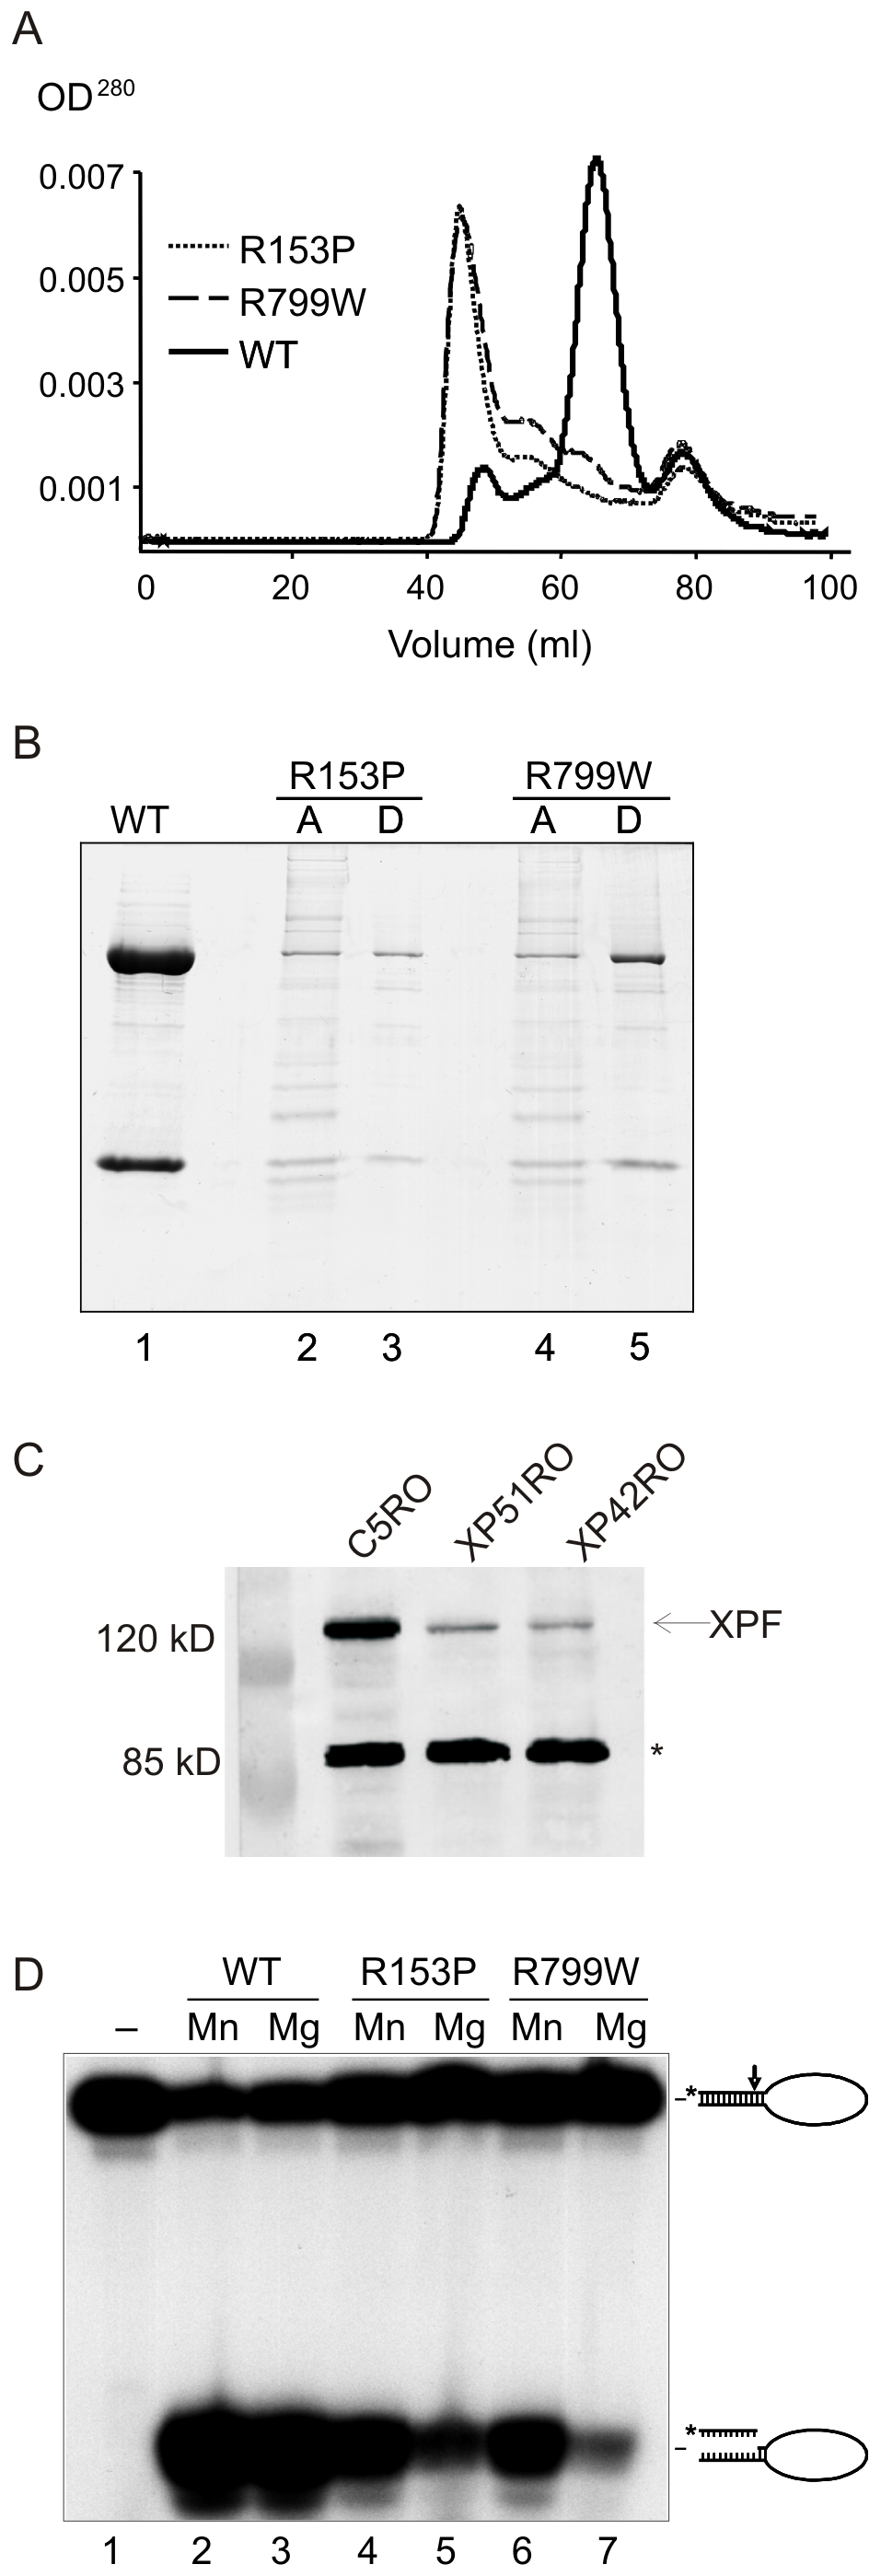 Biochemical characterization of XPF<sup>R153P</sup>-ERCC1 and XPF<sup>R799W</sup>-ERCC1 mutants.